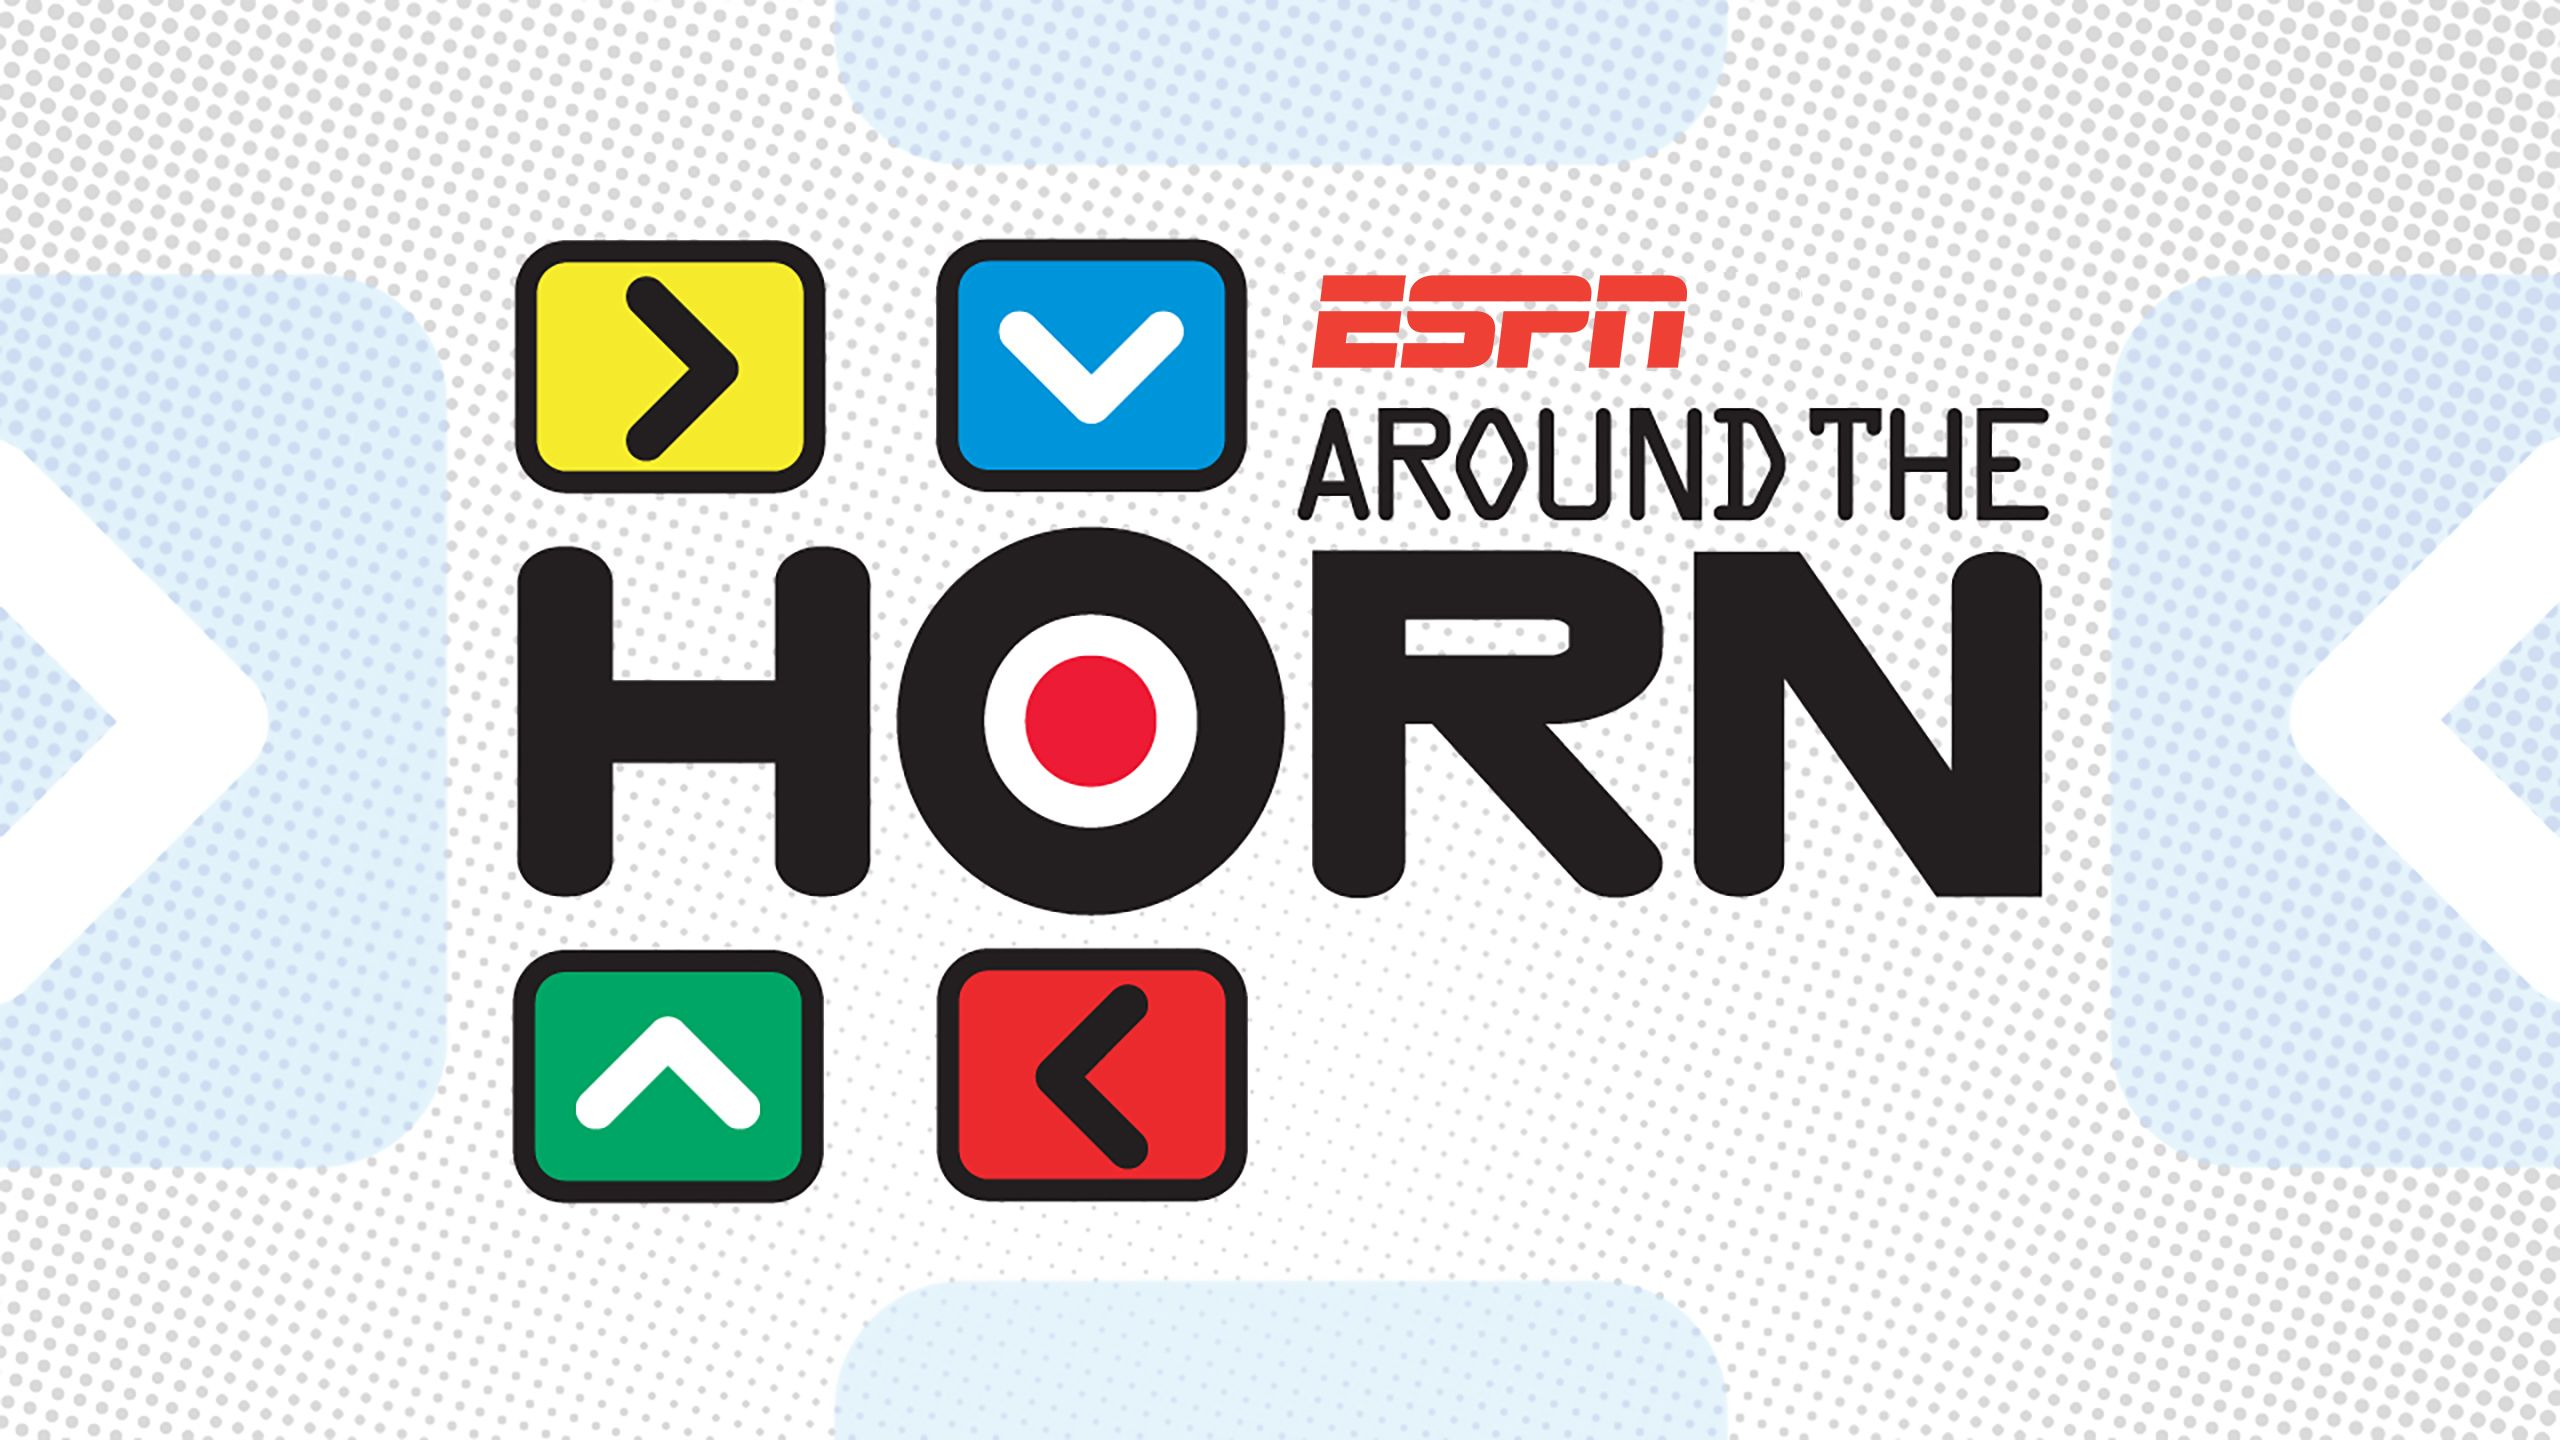 Thu, 10/19 - Around The Horn